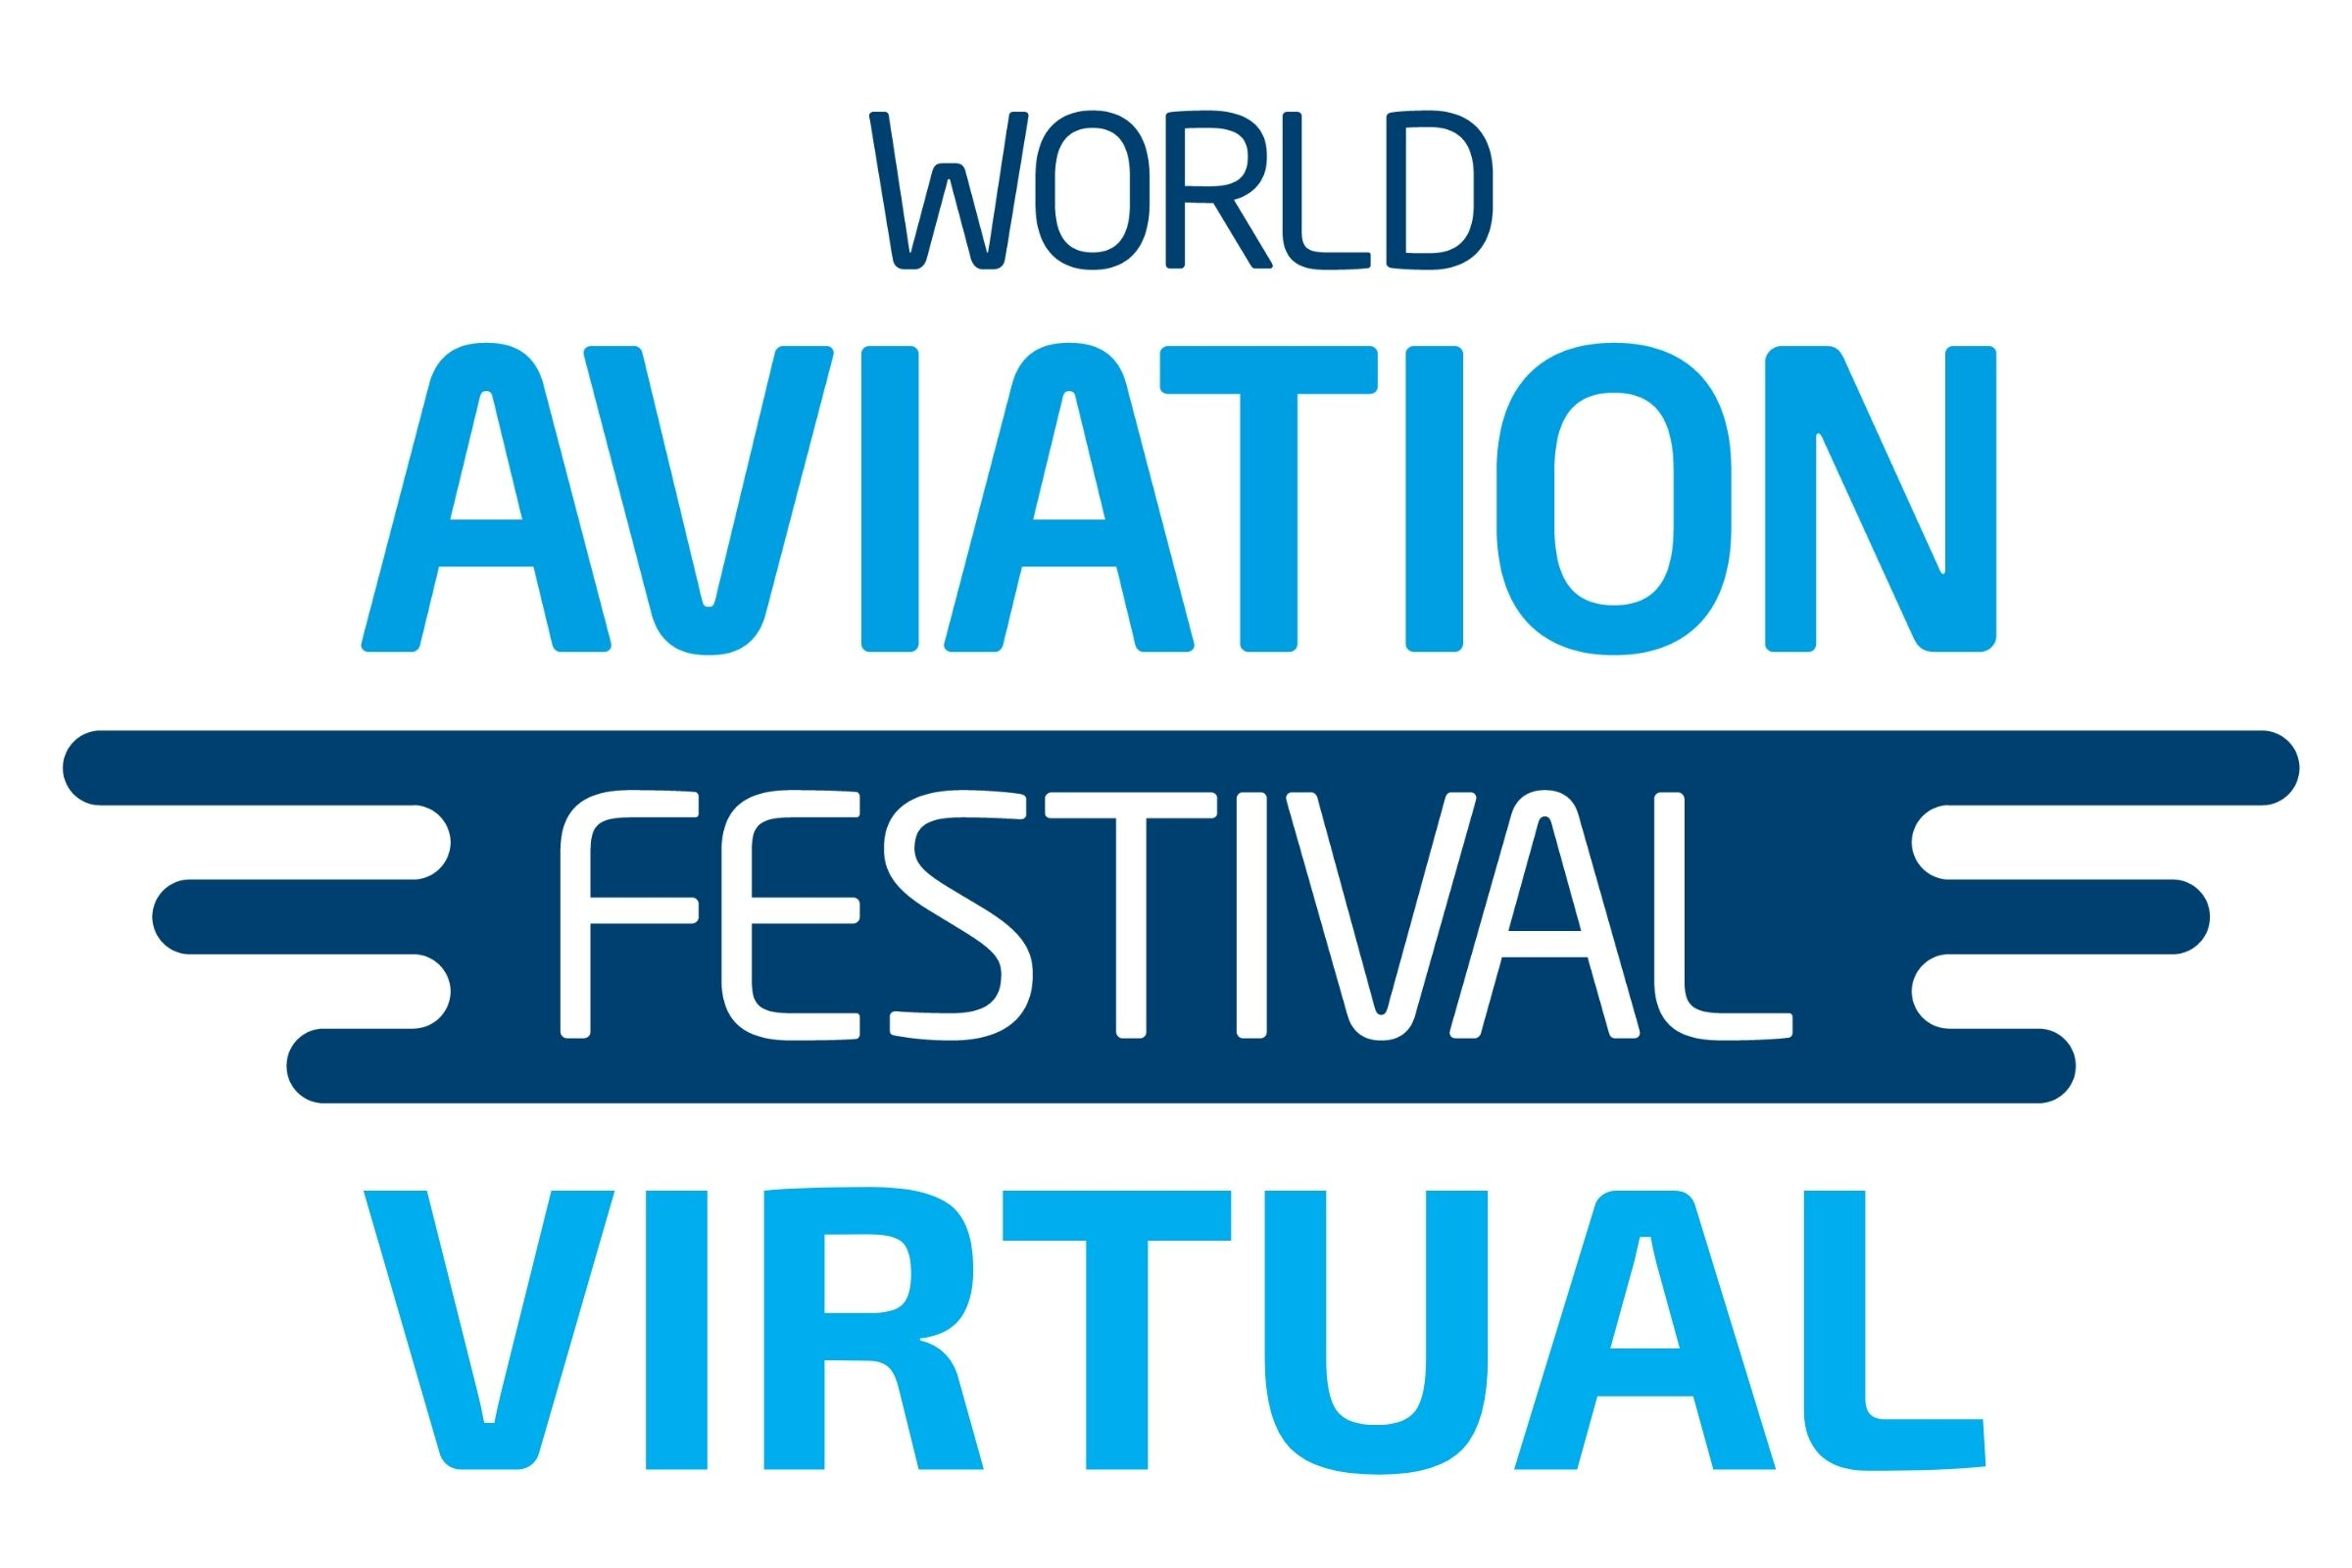 Trstpays thrilled to be selected for the World Aviation Festival innovation programme!